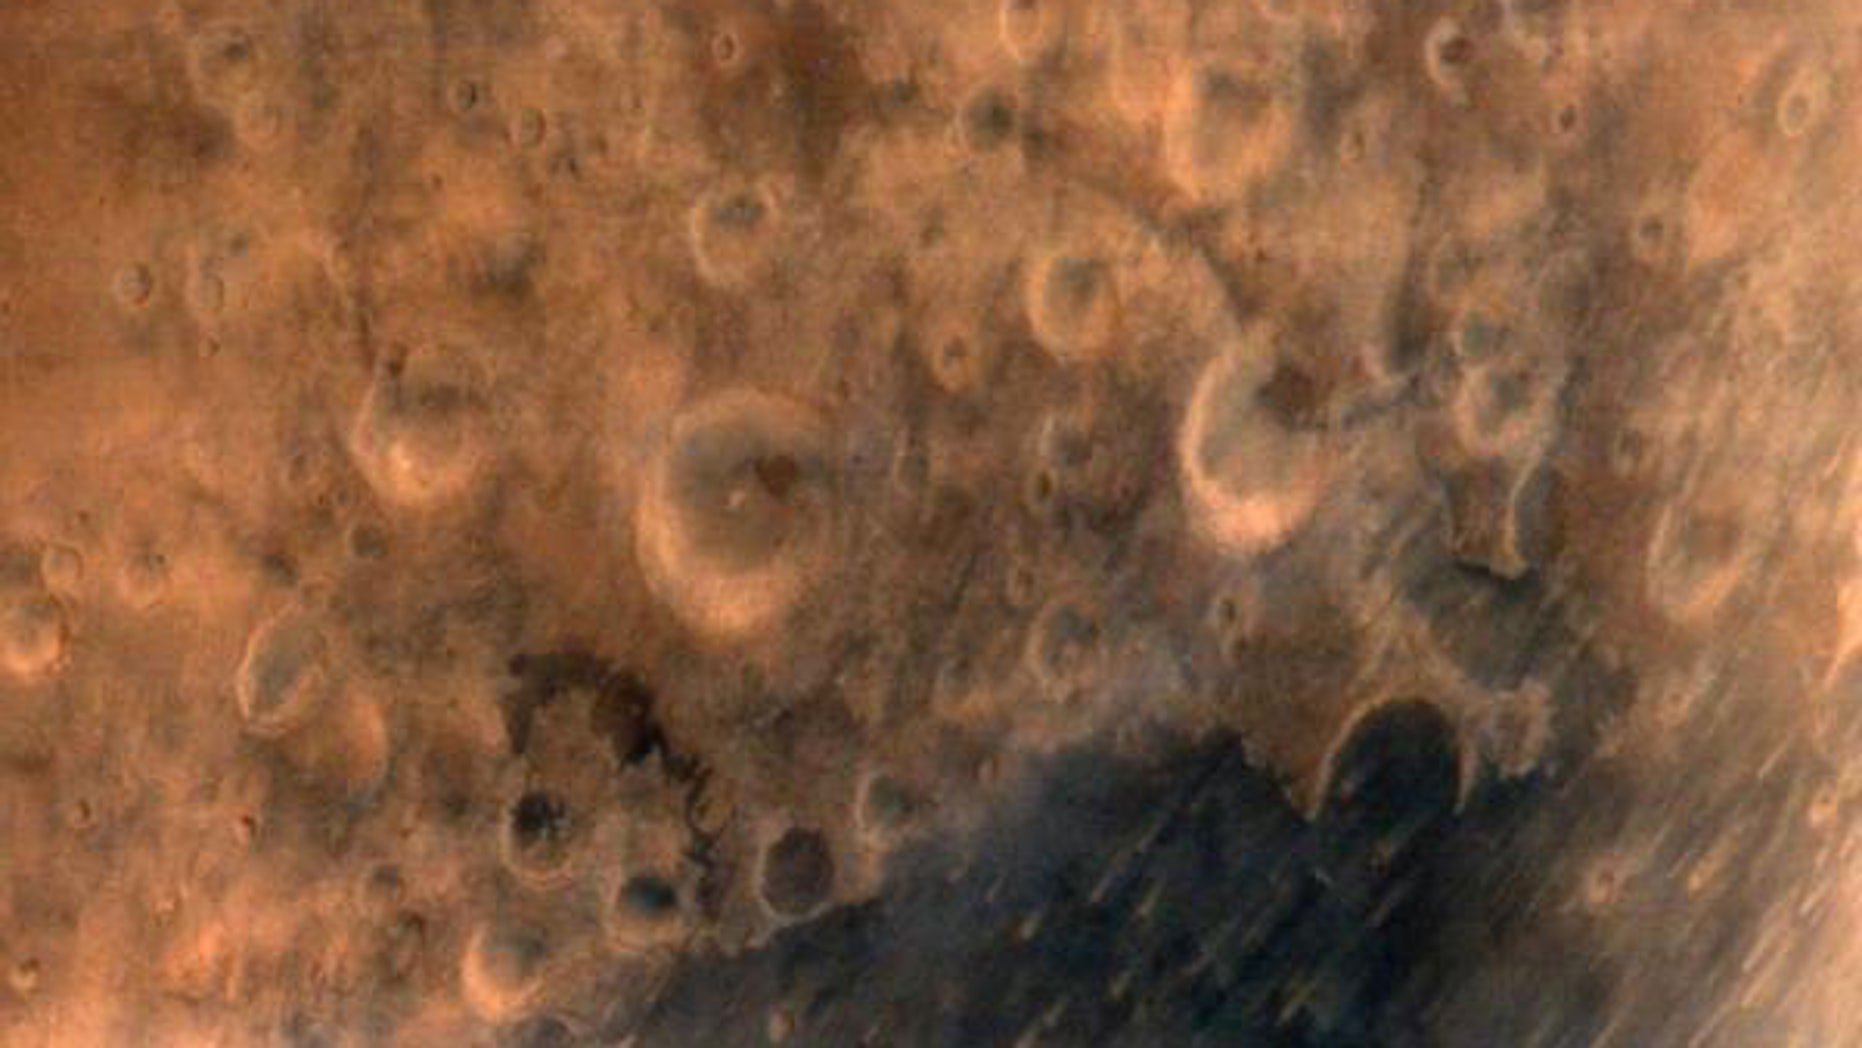 This image provided by the Indian Government Press Information Bureau shows what the agency says is one of the first images of the surface of Mars taken by India's Mars Orbiter Mission satellite, on Thursday, Sept. 25, 2014.